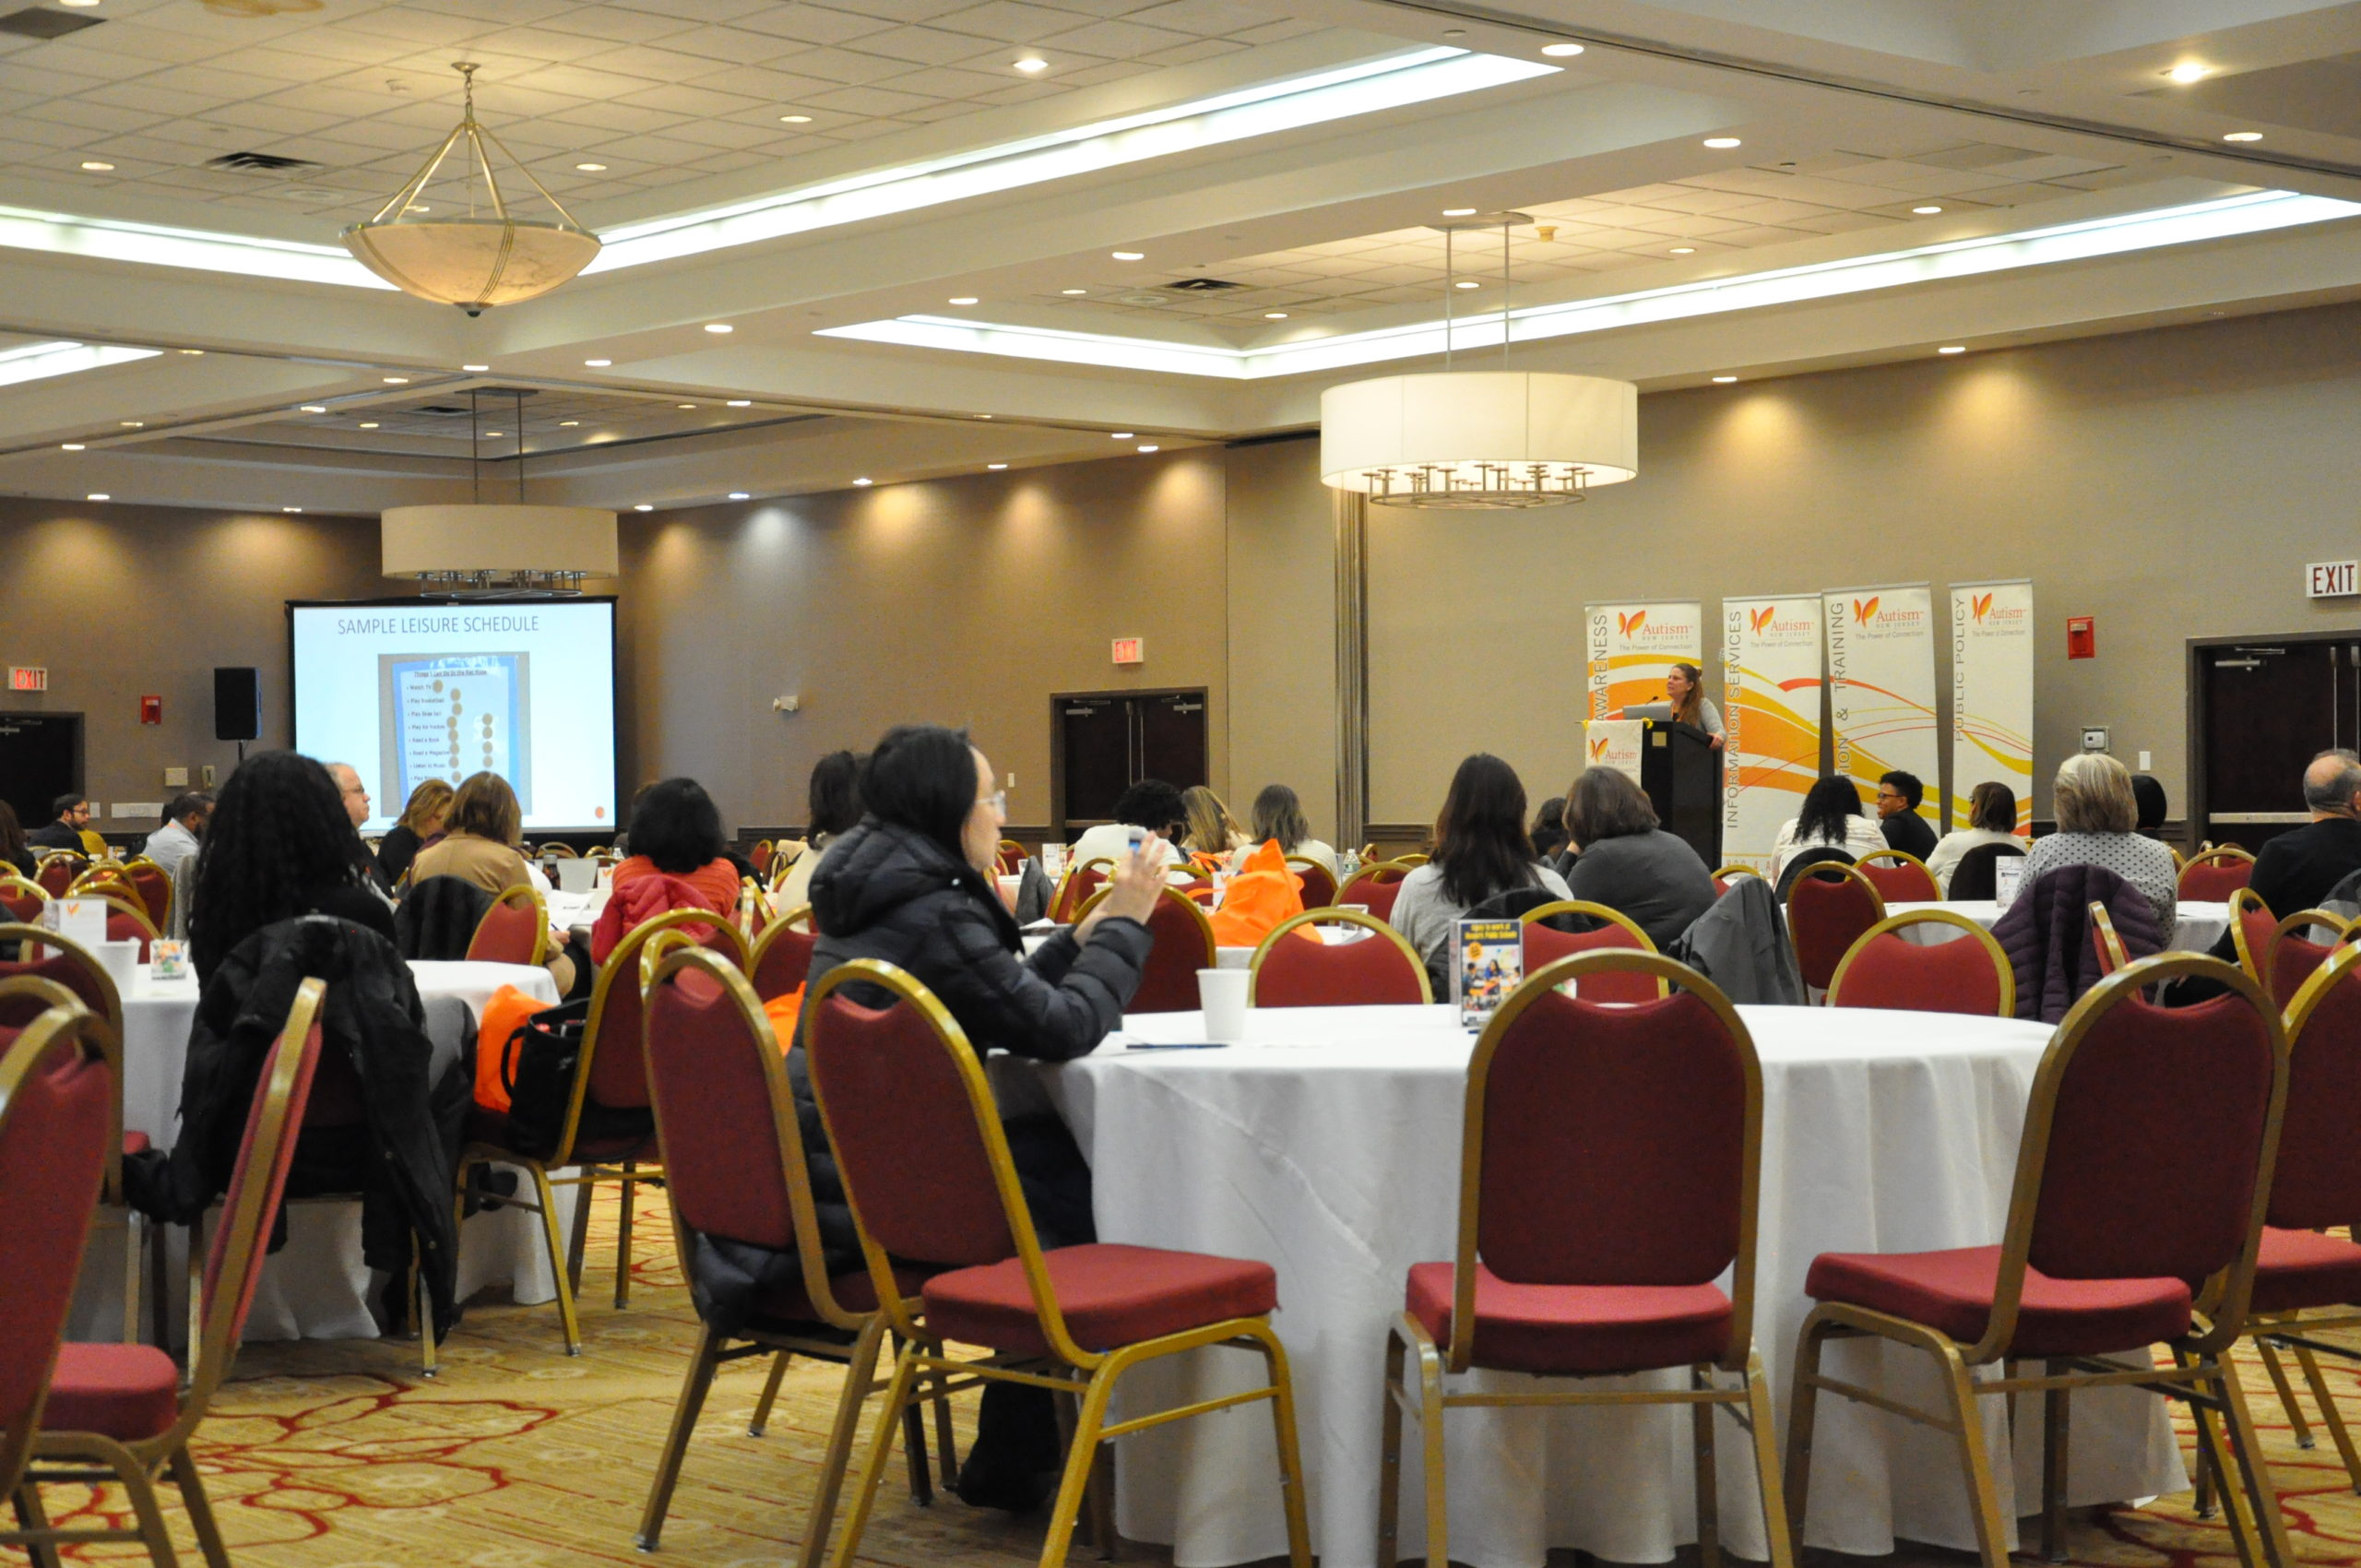 Almost 500 New Jersey parents, advocates, and educators gathered at Autism NJ's conference in Newark to learn about the transition to adulthood for students with autism.